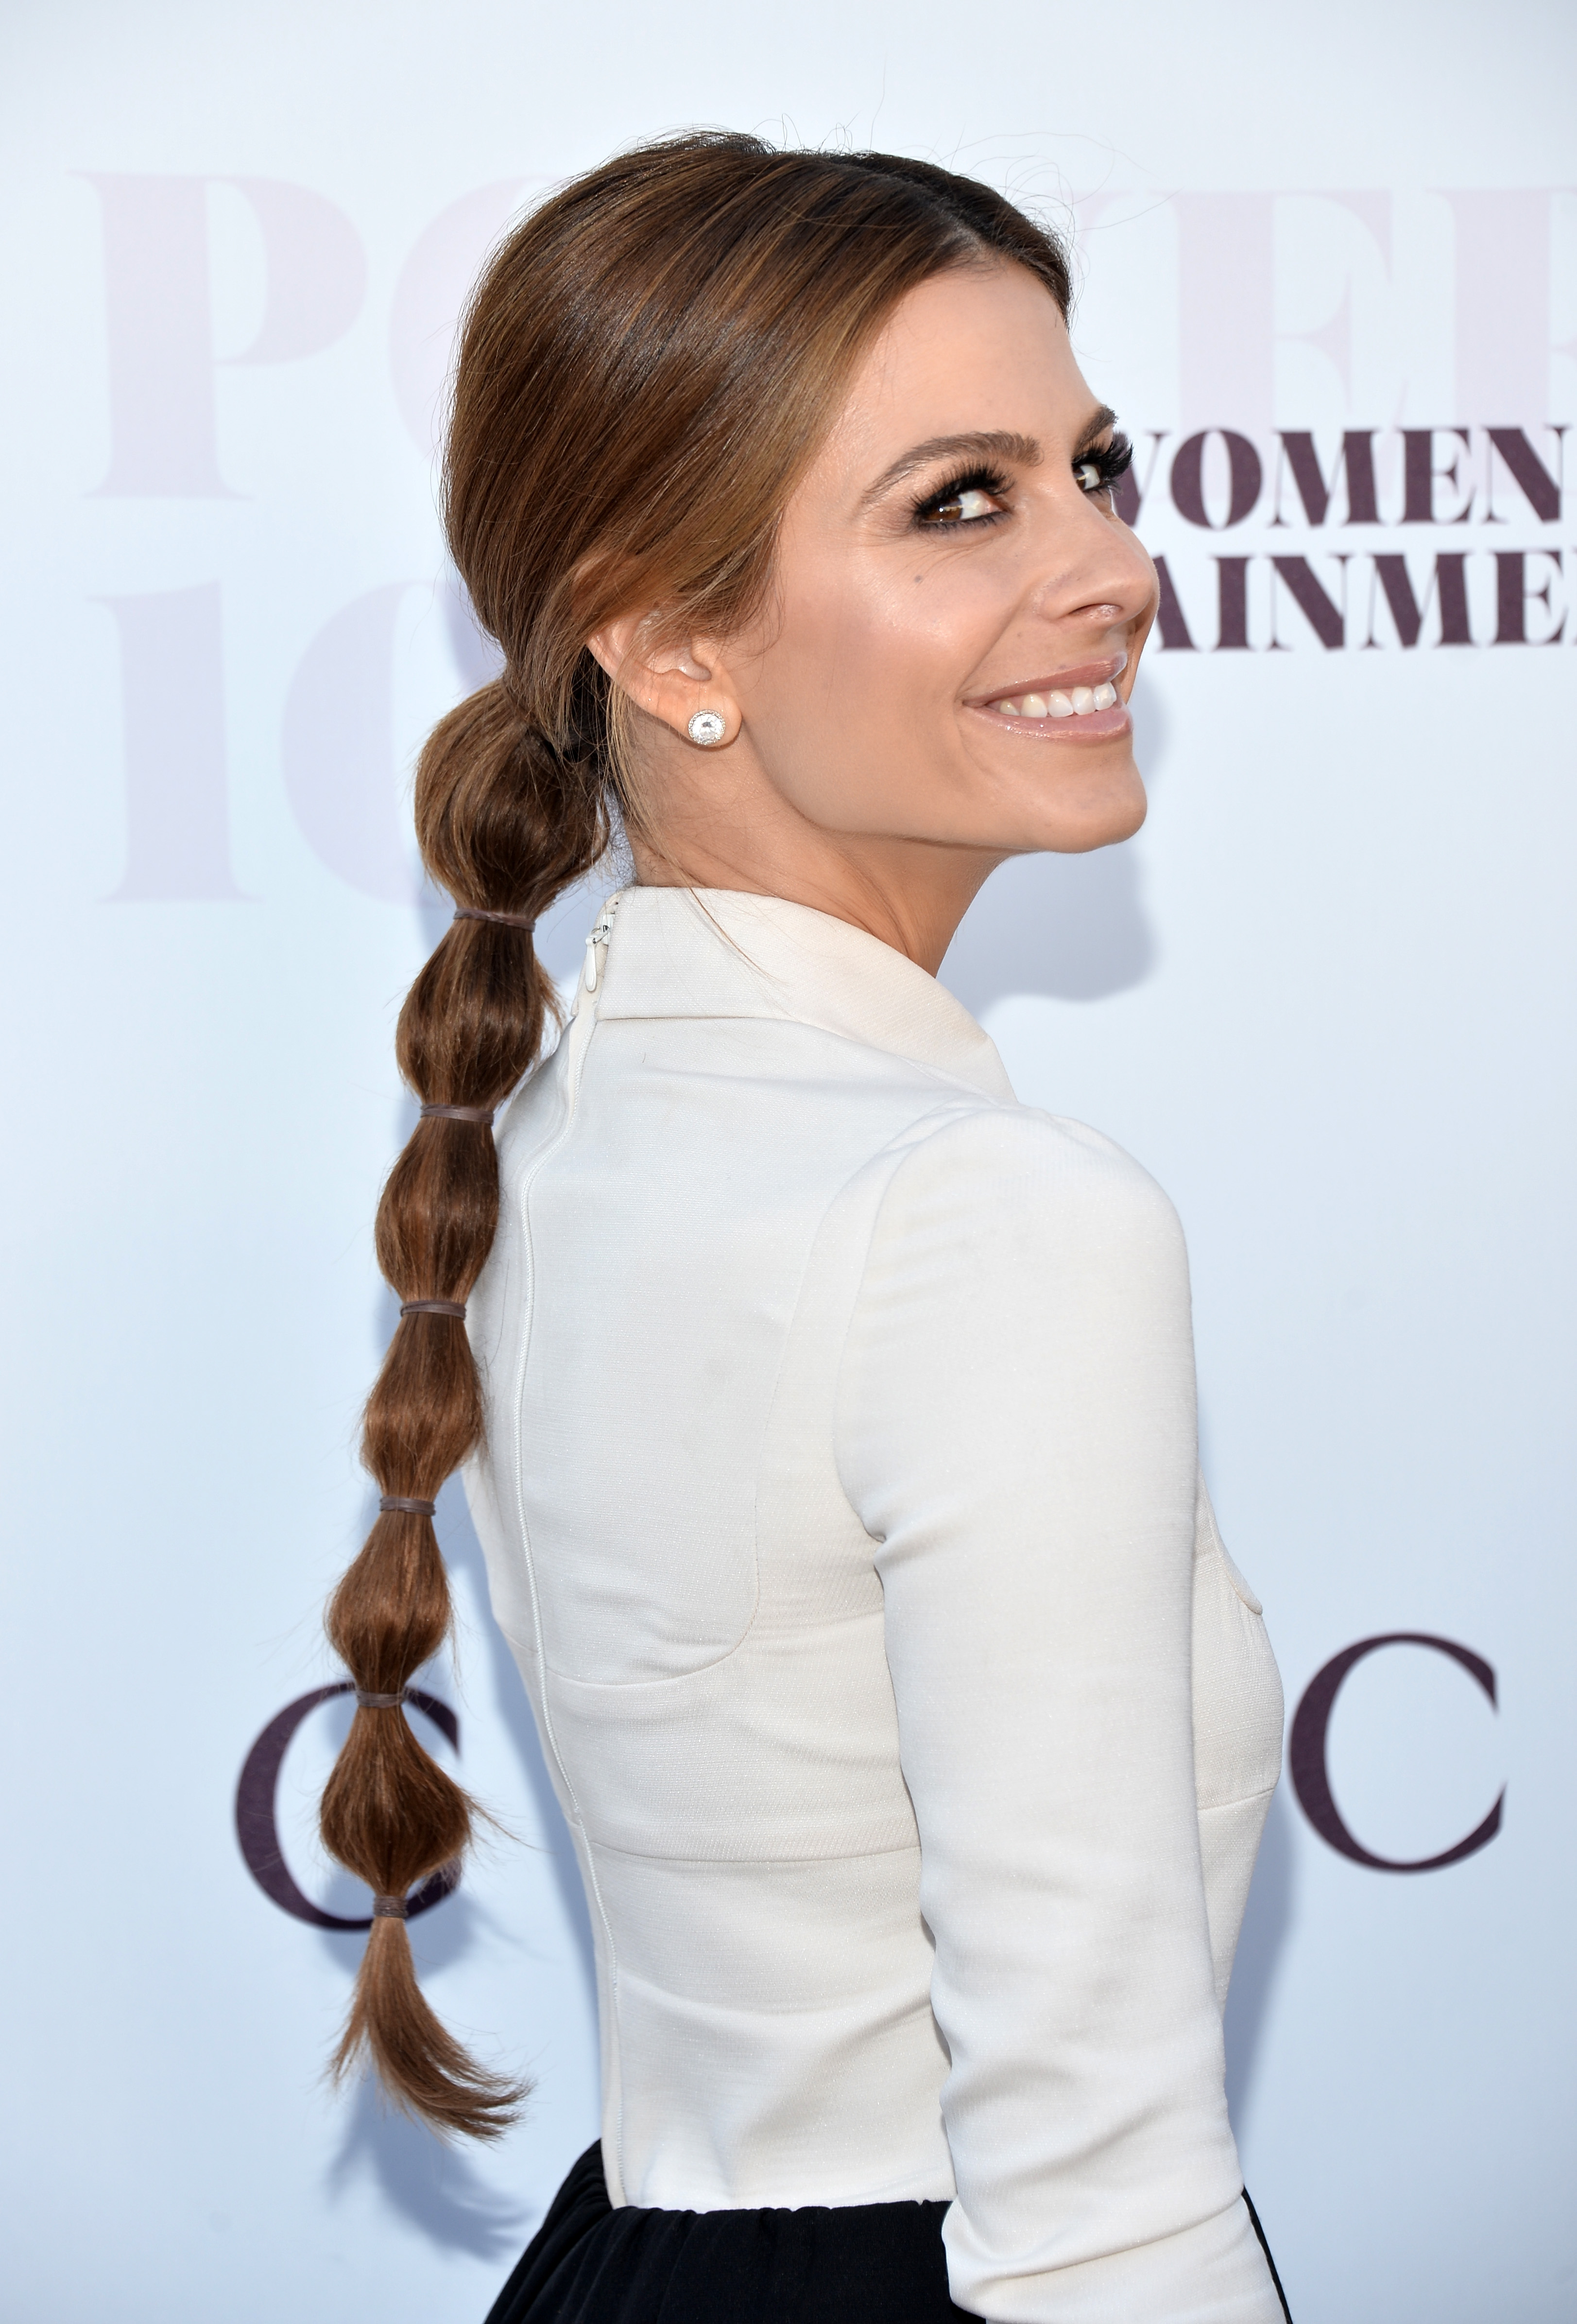 30 Ponytail Hairstyles for 2017 Best Ideas for Ponytails